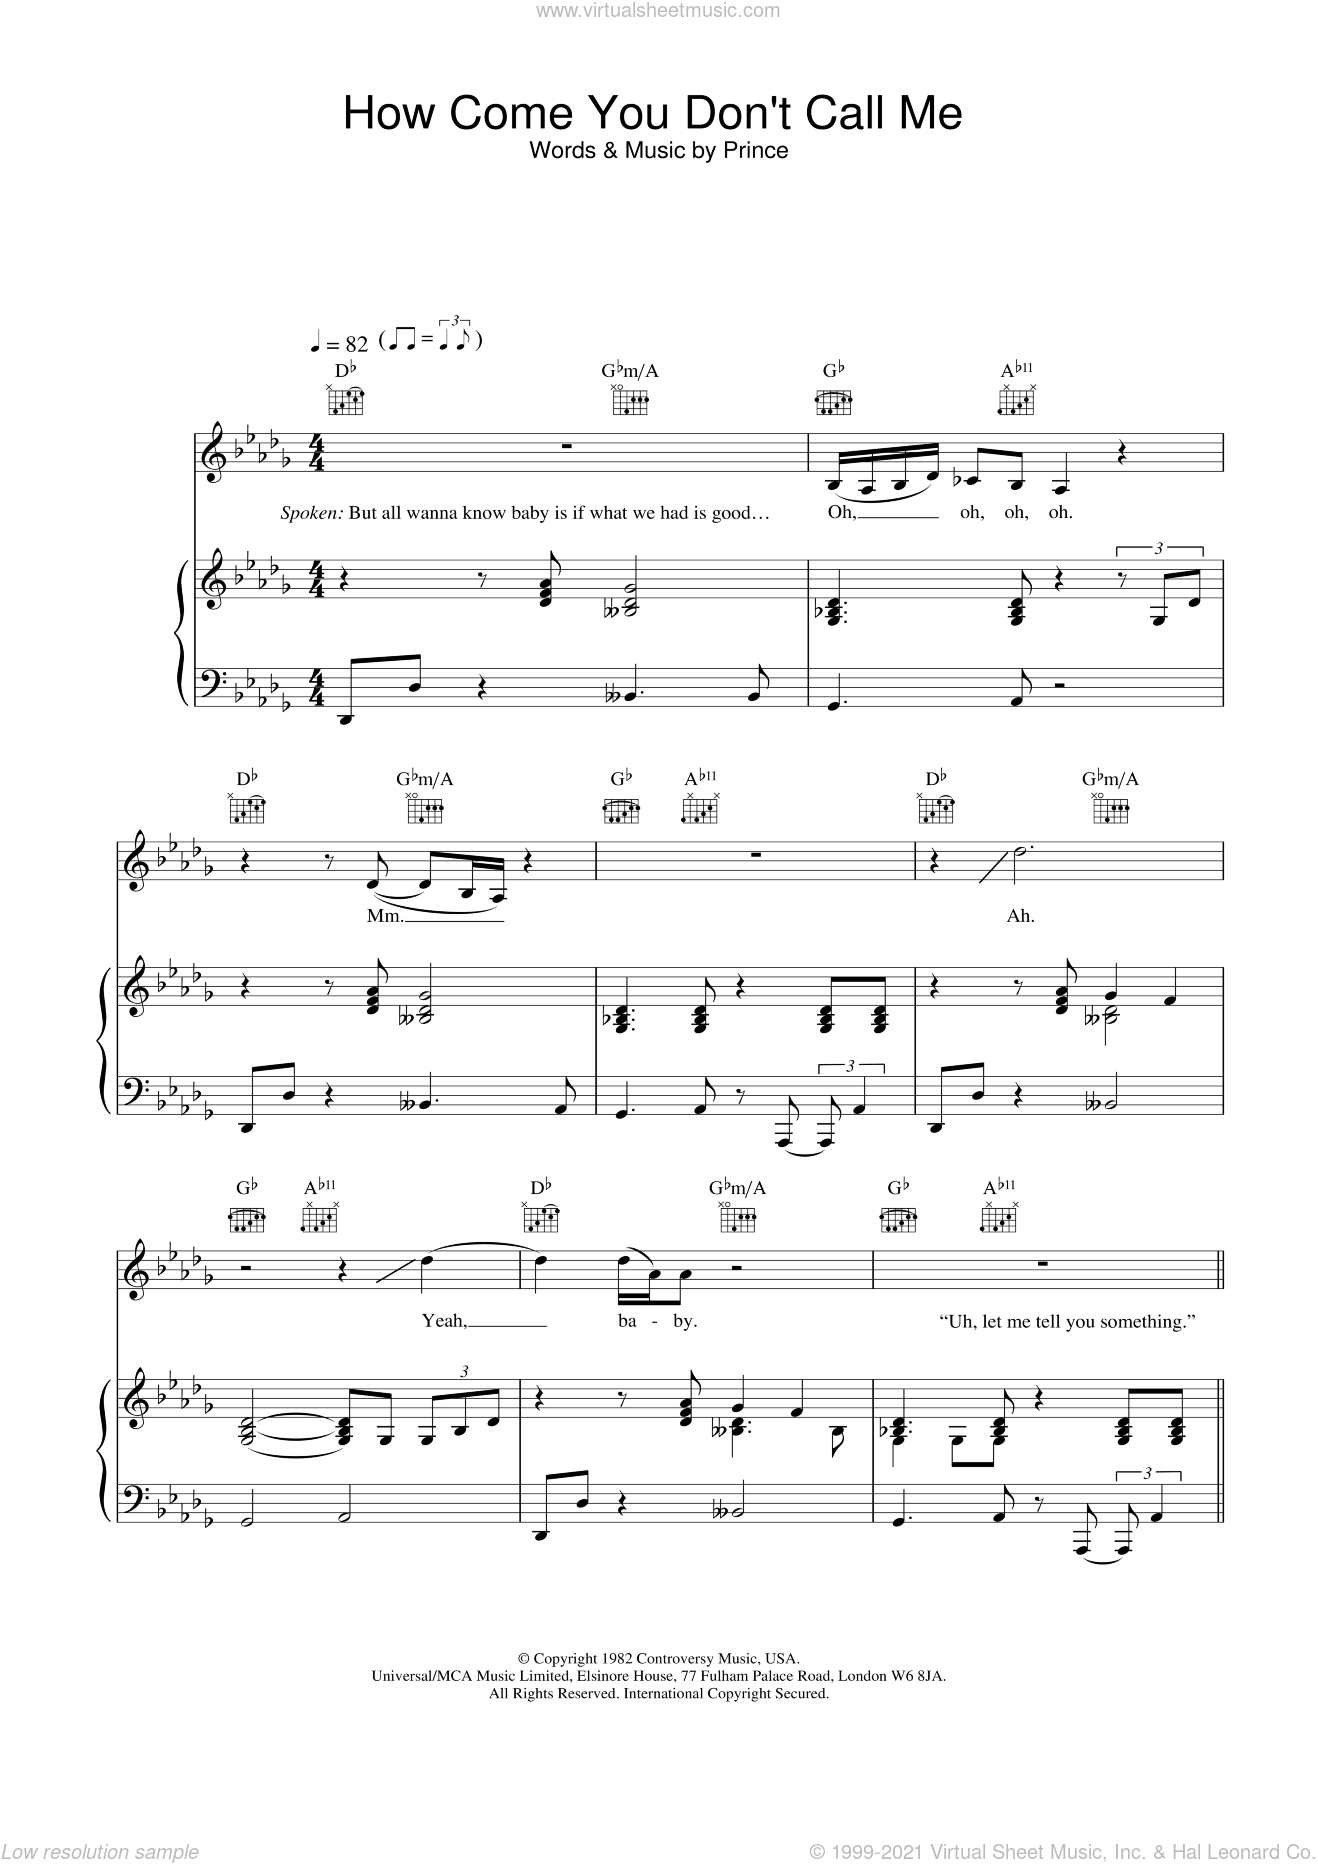 How Come You Don't Call Me sheet music for voice, piano or guitar by Alicia Keys. Score Image Preview.